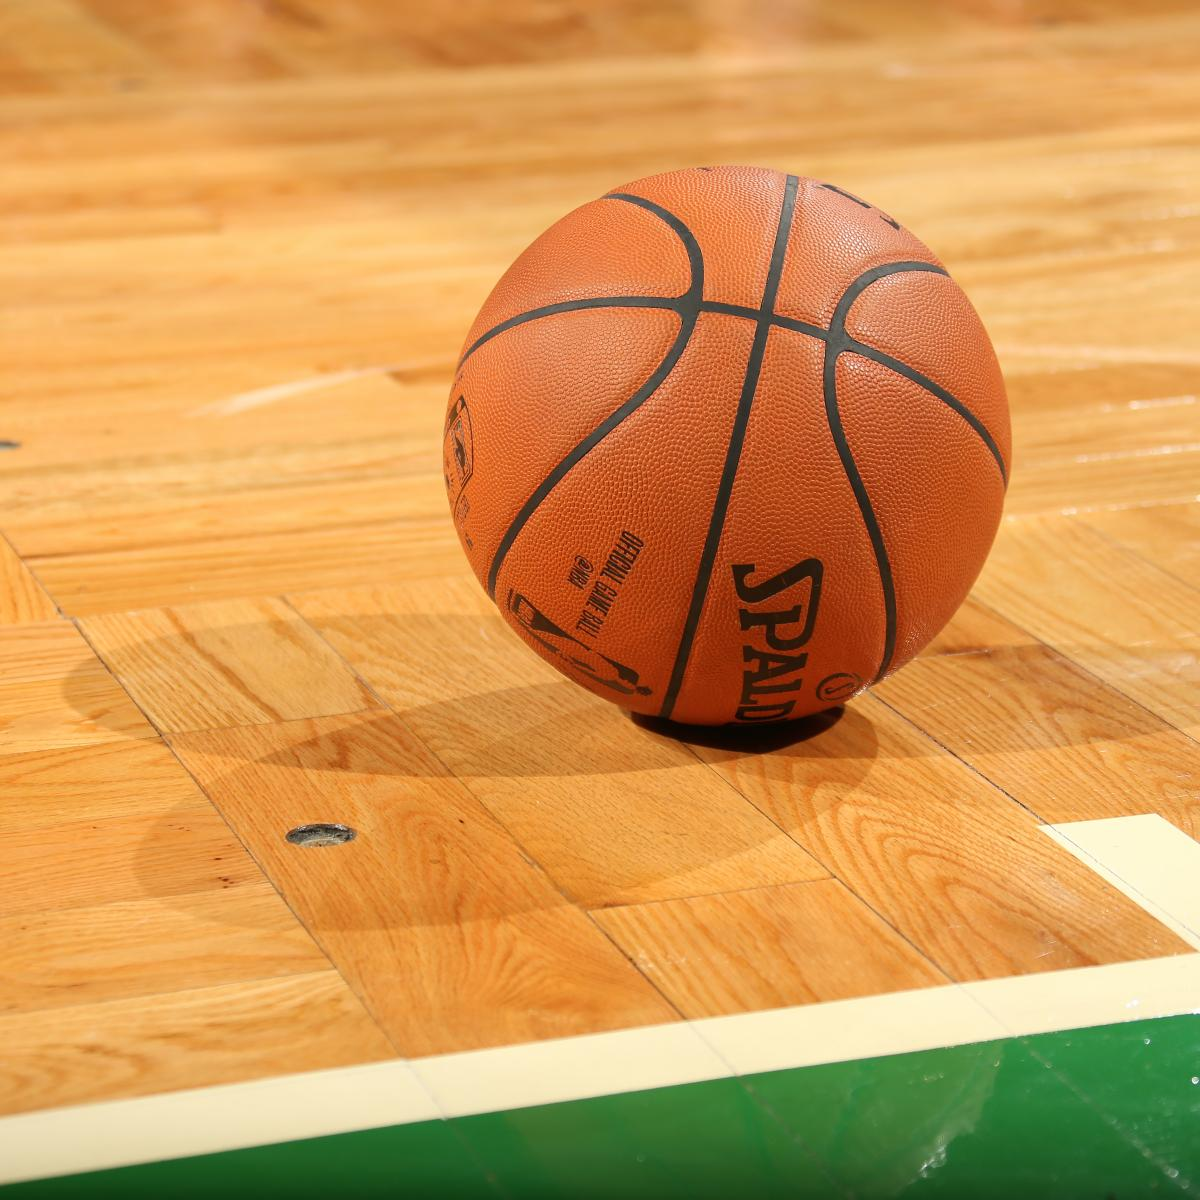 NBA Reportedly Plans to Paint 'Black Lives Matter' on Courts in Orlando Arenas